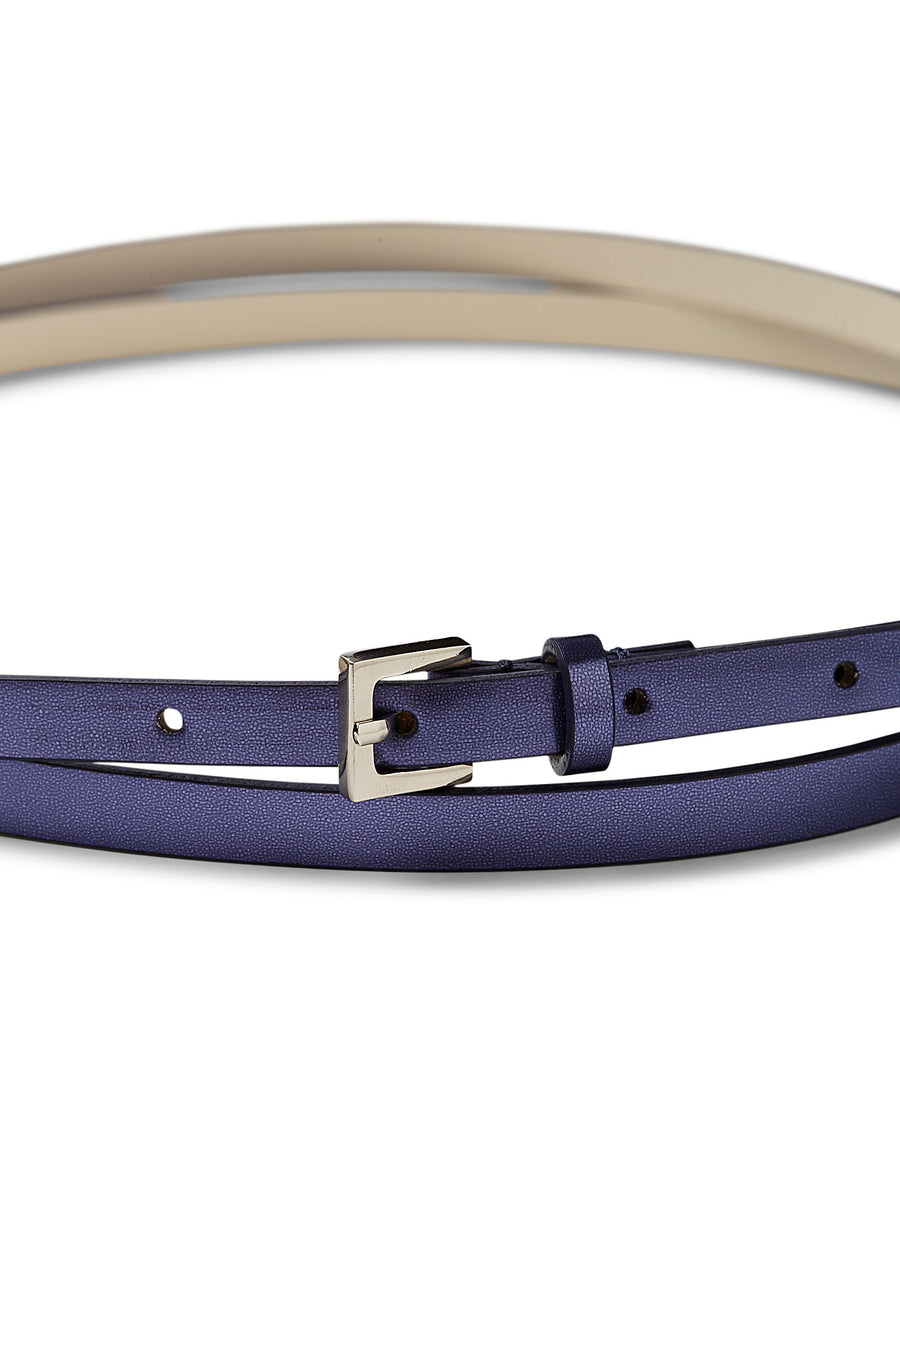 MIRROR WRAP BELT NERO, Double Wrap Belt, Silver Hardware, SAPPHIRE color